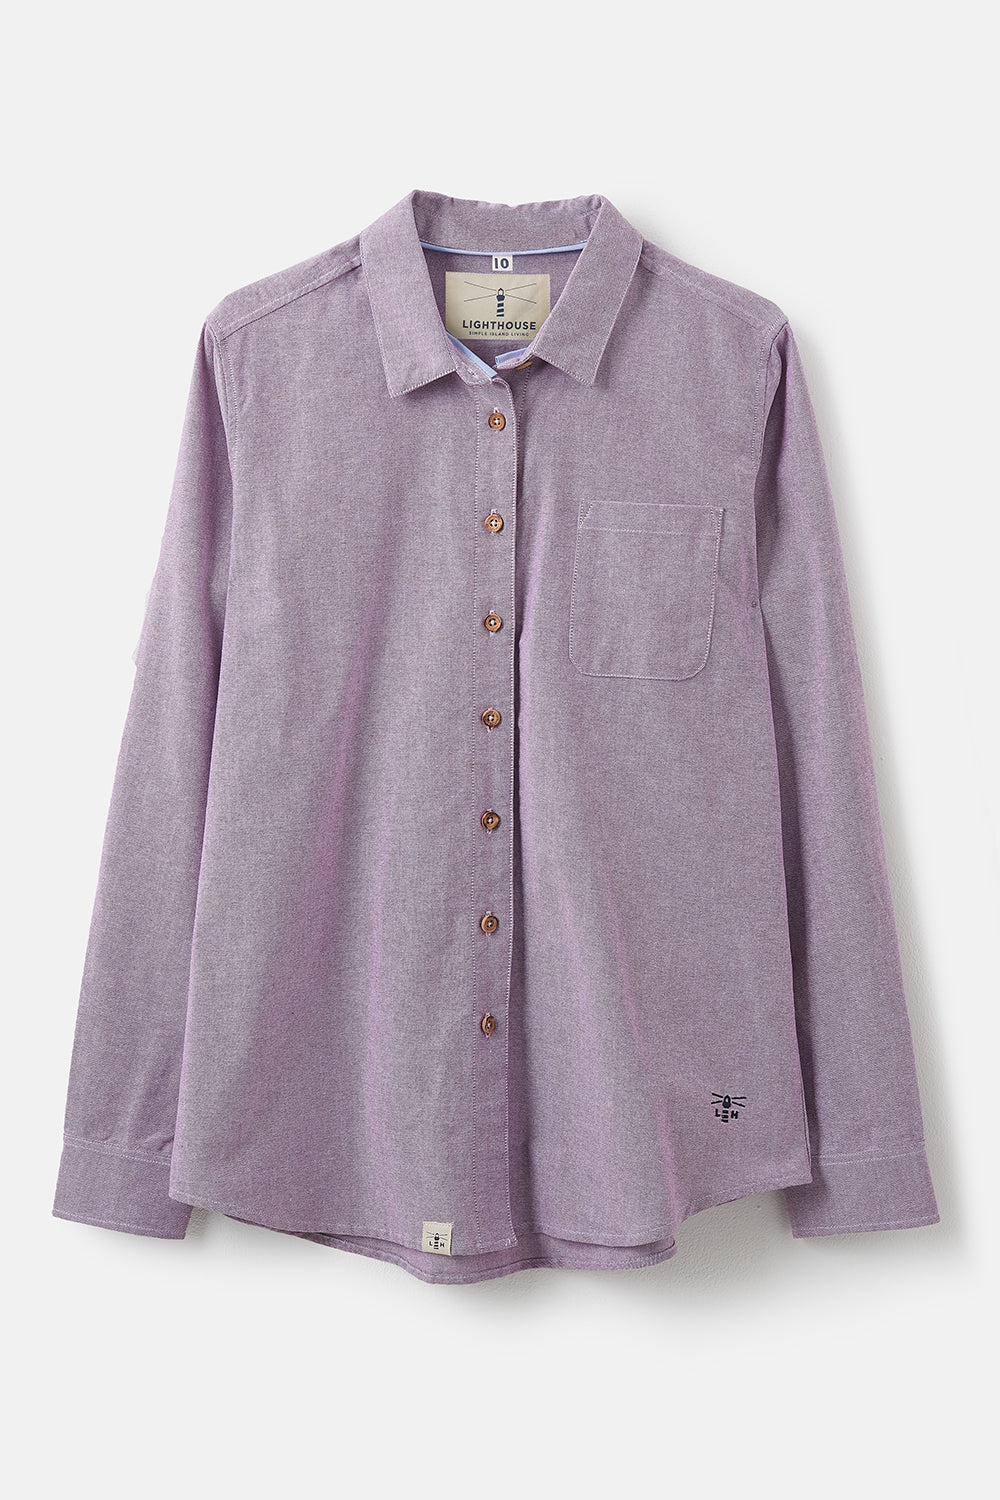 Lighthouse Ocean - Womens Button Up Shirt - Grape